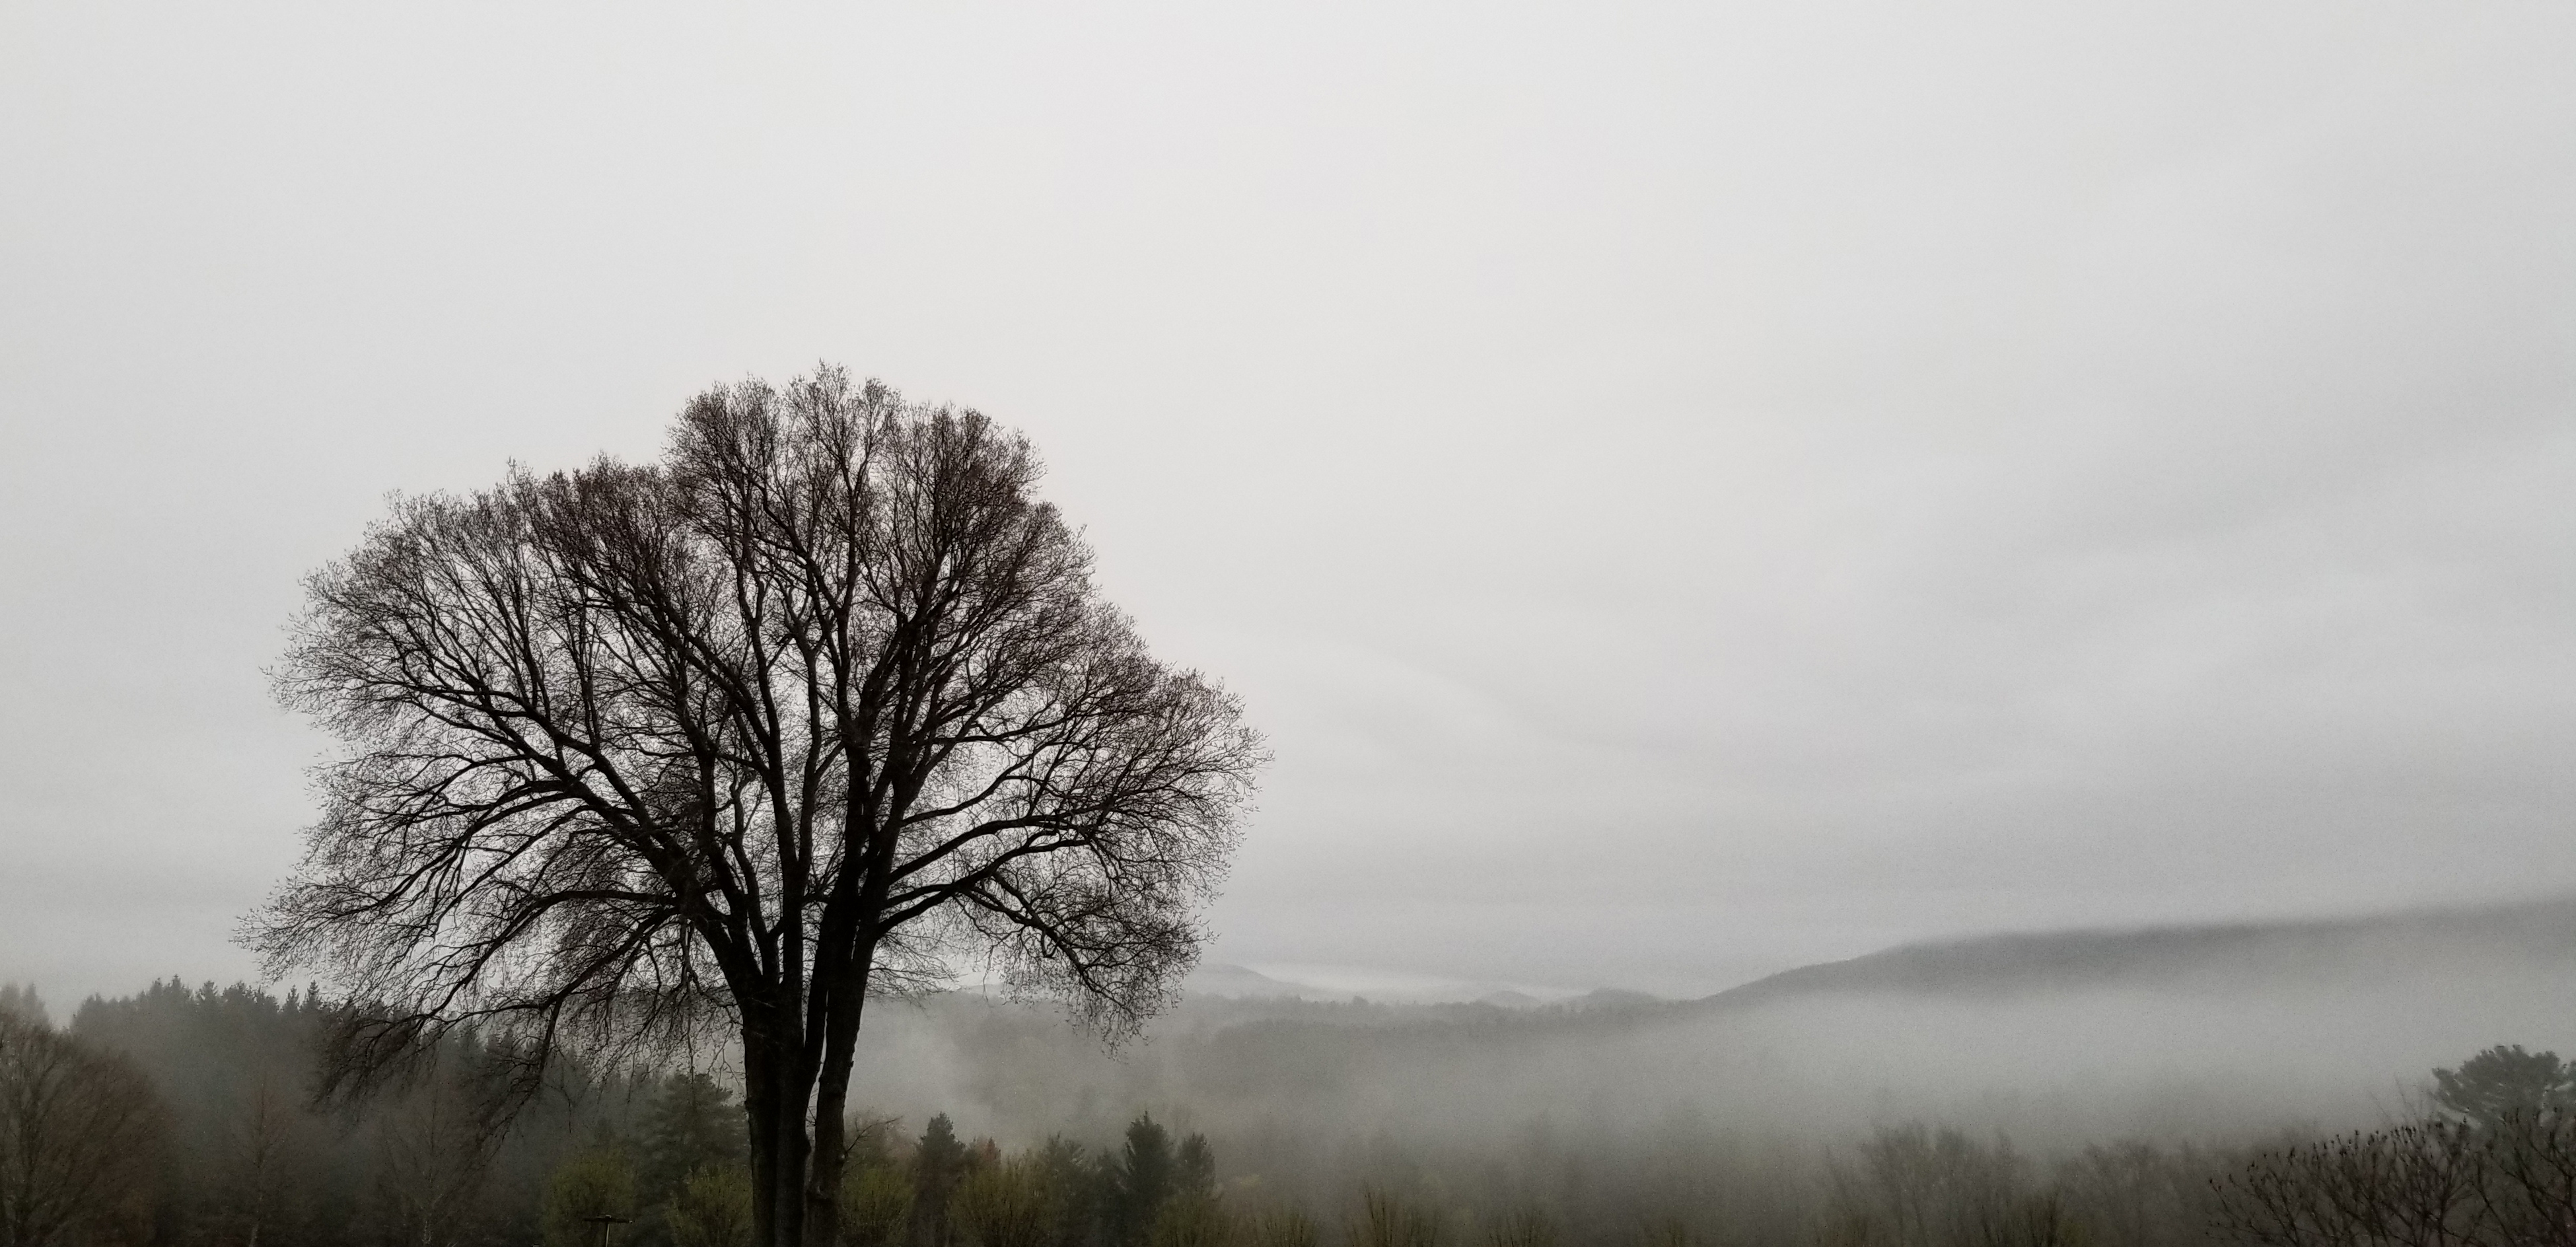 Tree with fog on mountains